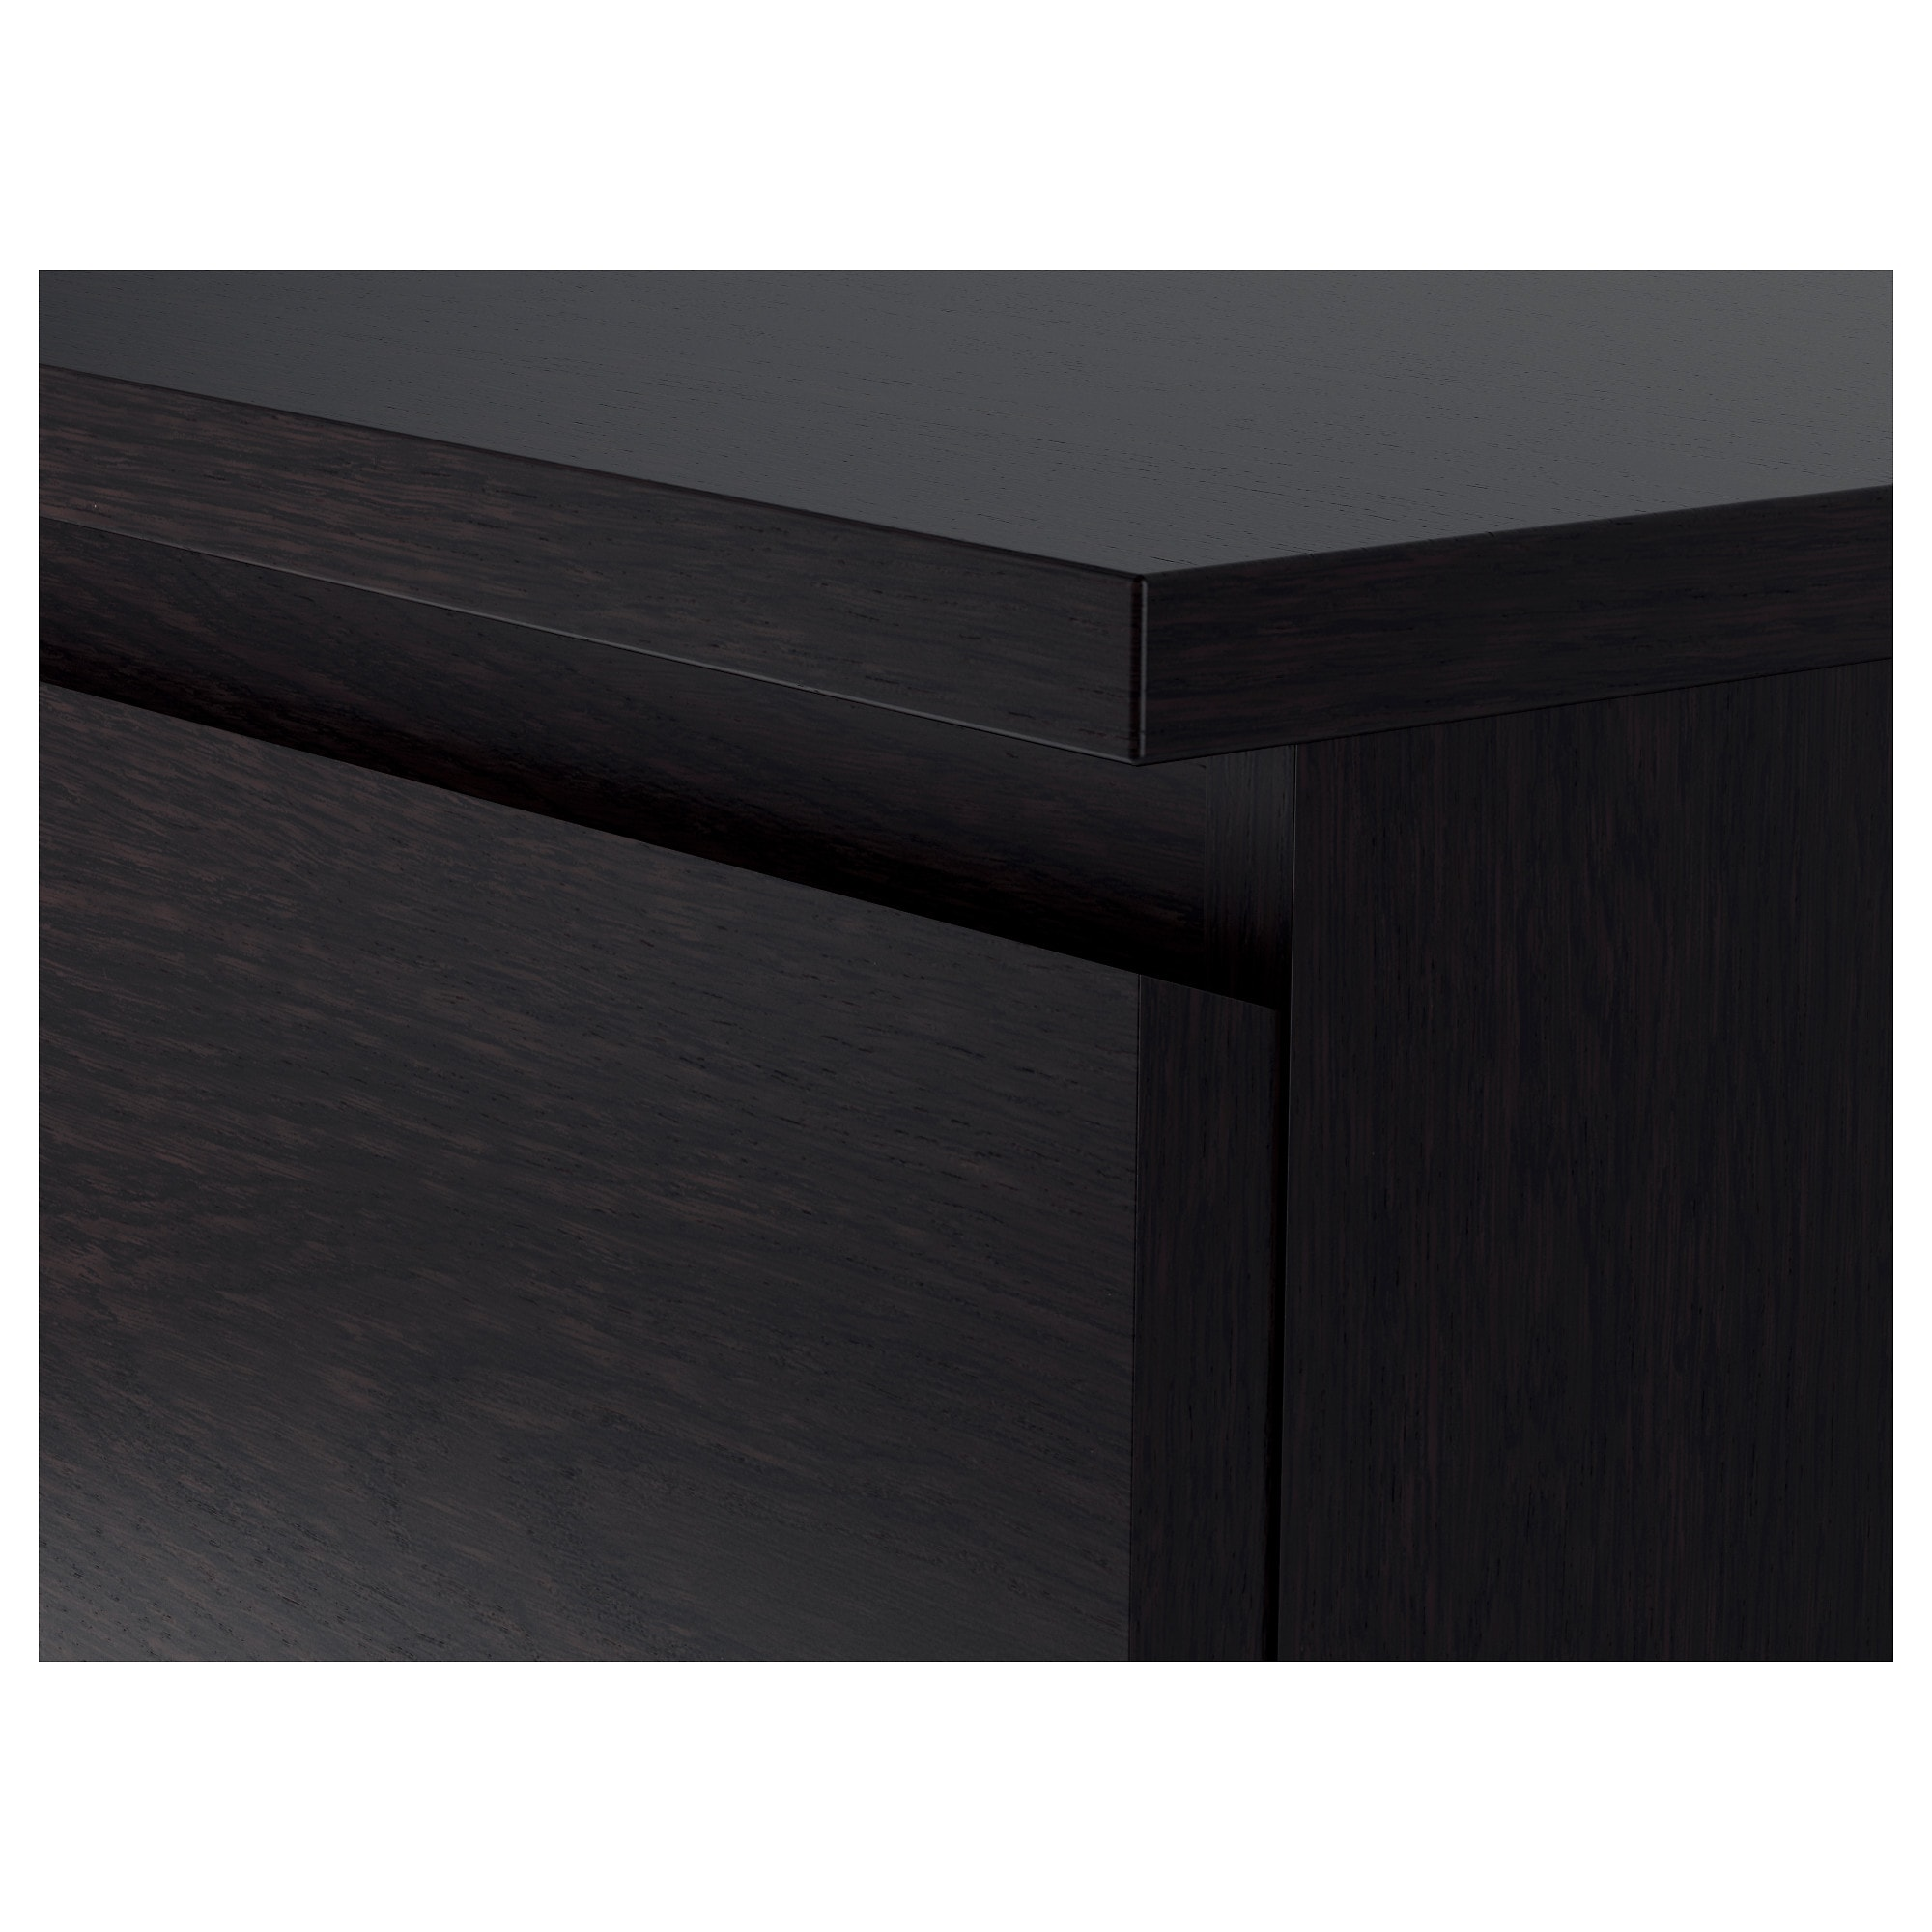 prodigious Ikea Malm Black Brown Part - 2: MALM 6-drawer chest - black-brown - IKEA